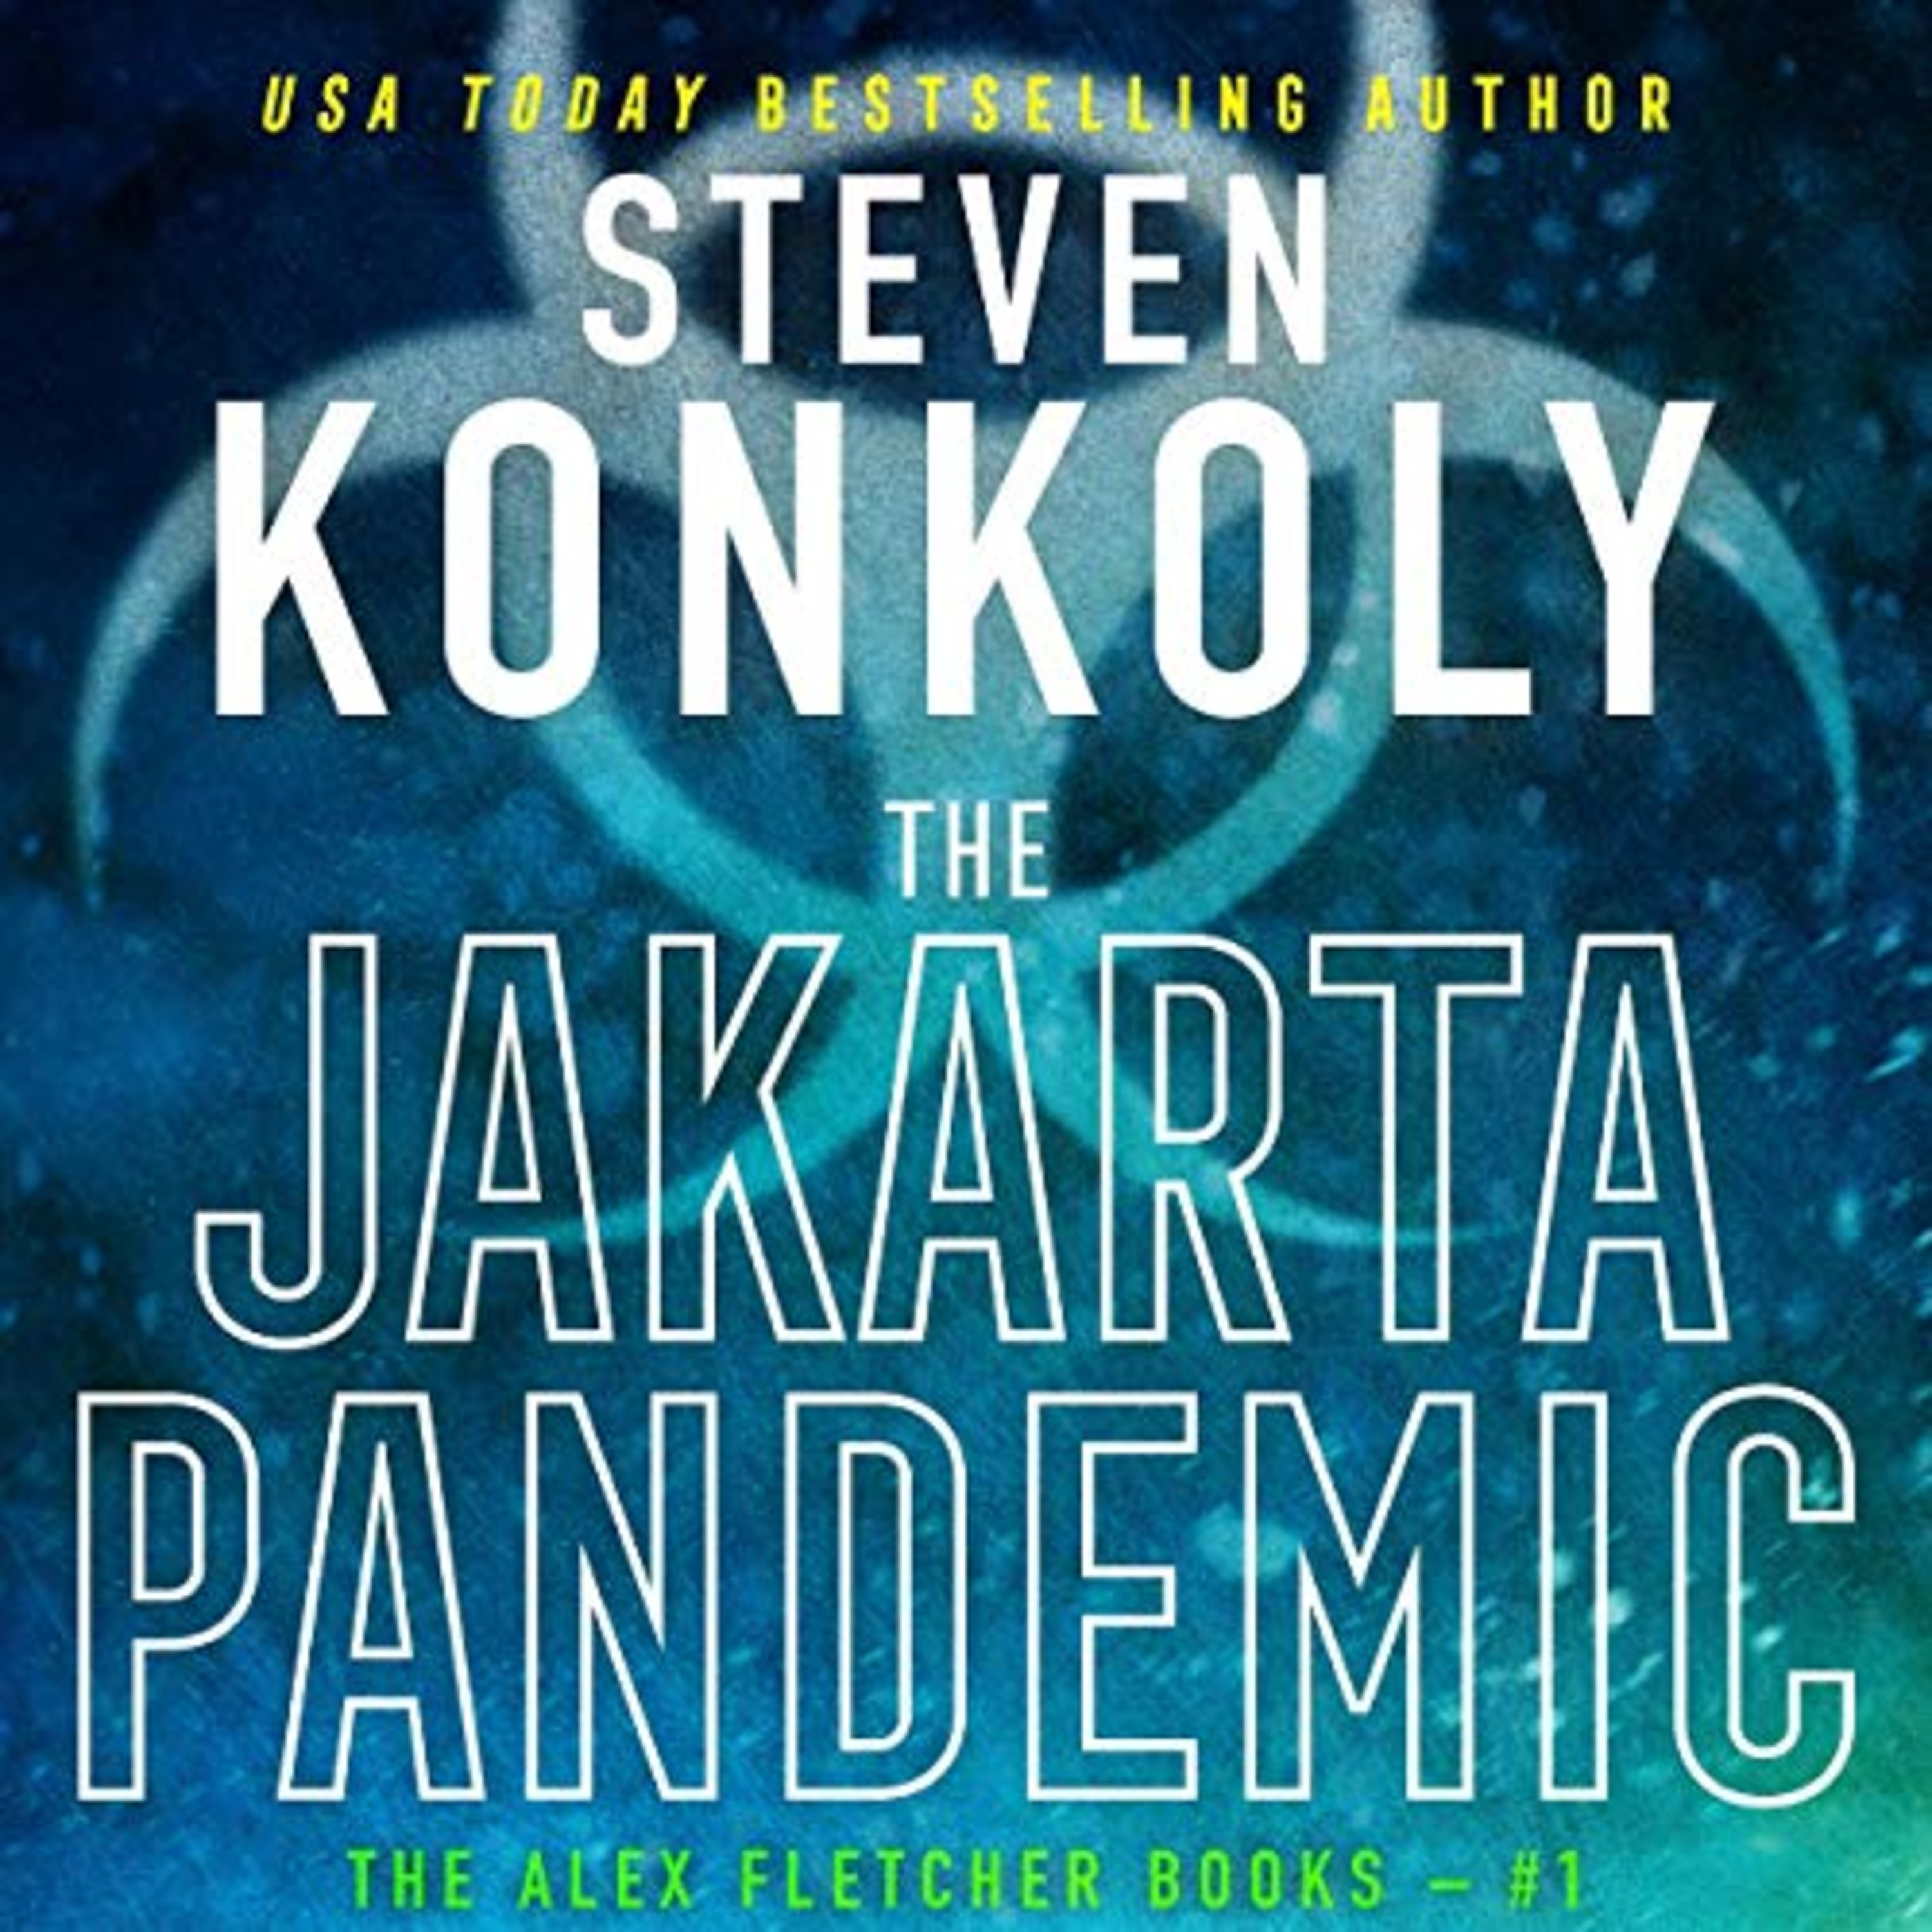 Review: The Jakarta Pandemic